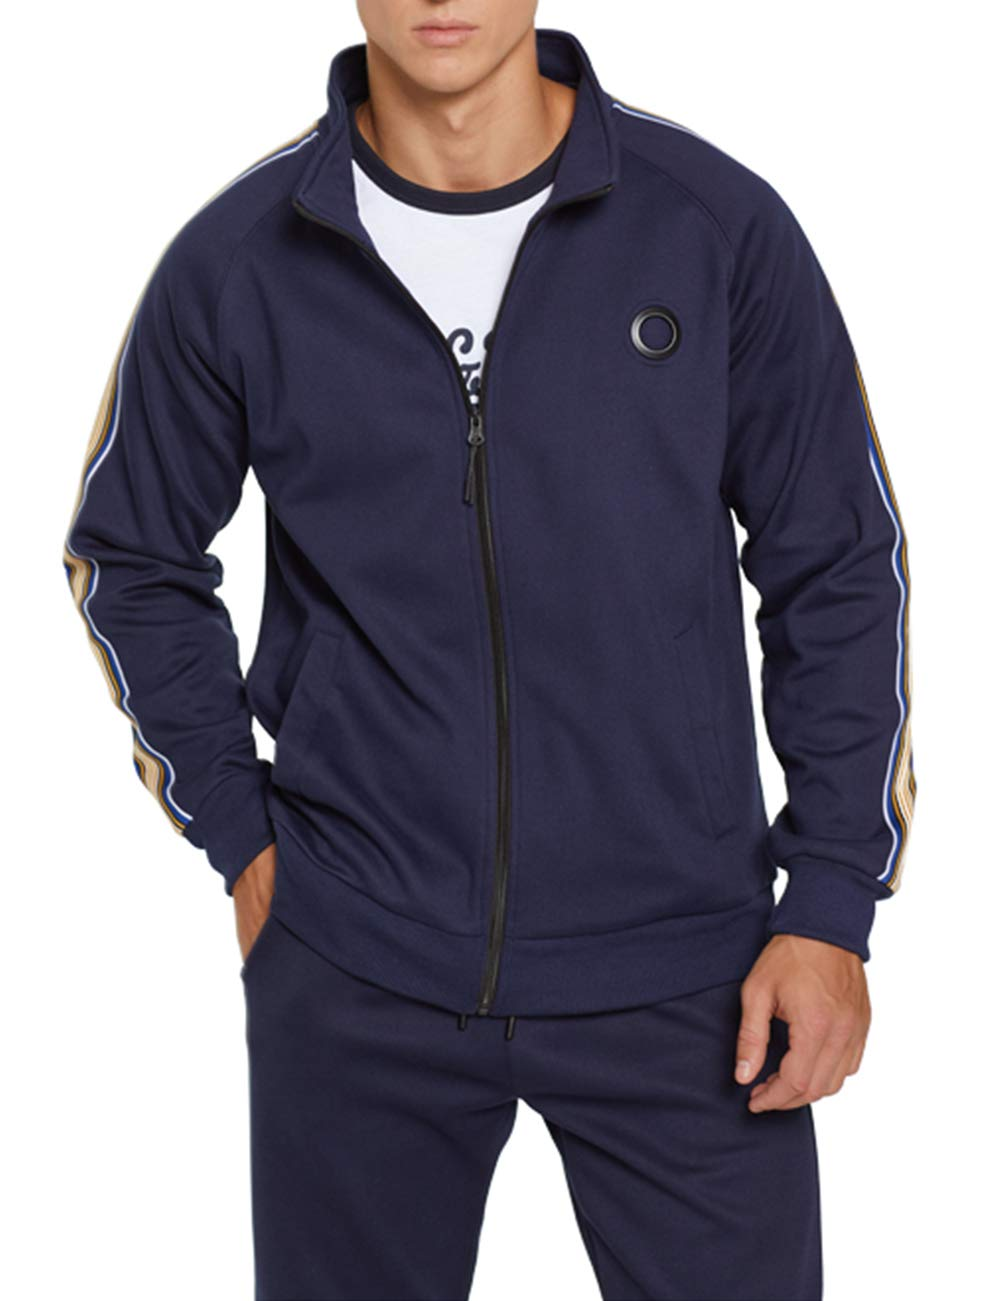 Men's Sports Casual Tracksuit Set Long Sleeve Running Jogging Sweat Suits, Blue-2XL by DUOFIER